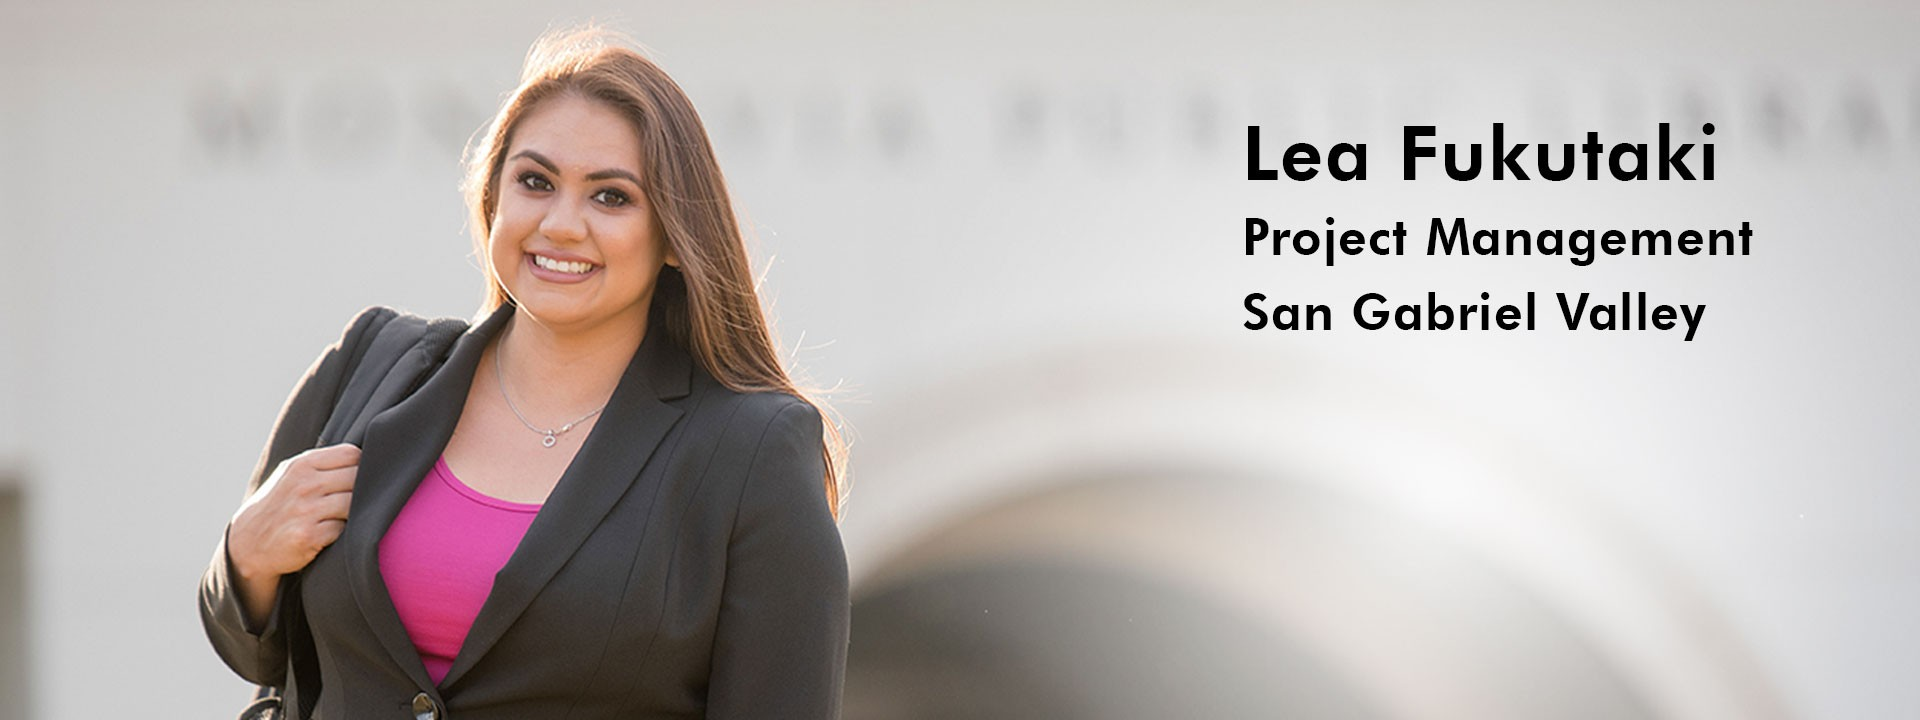 Lea Fukutaki, Project Management | San Gabriel Valley